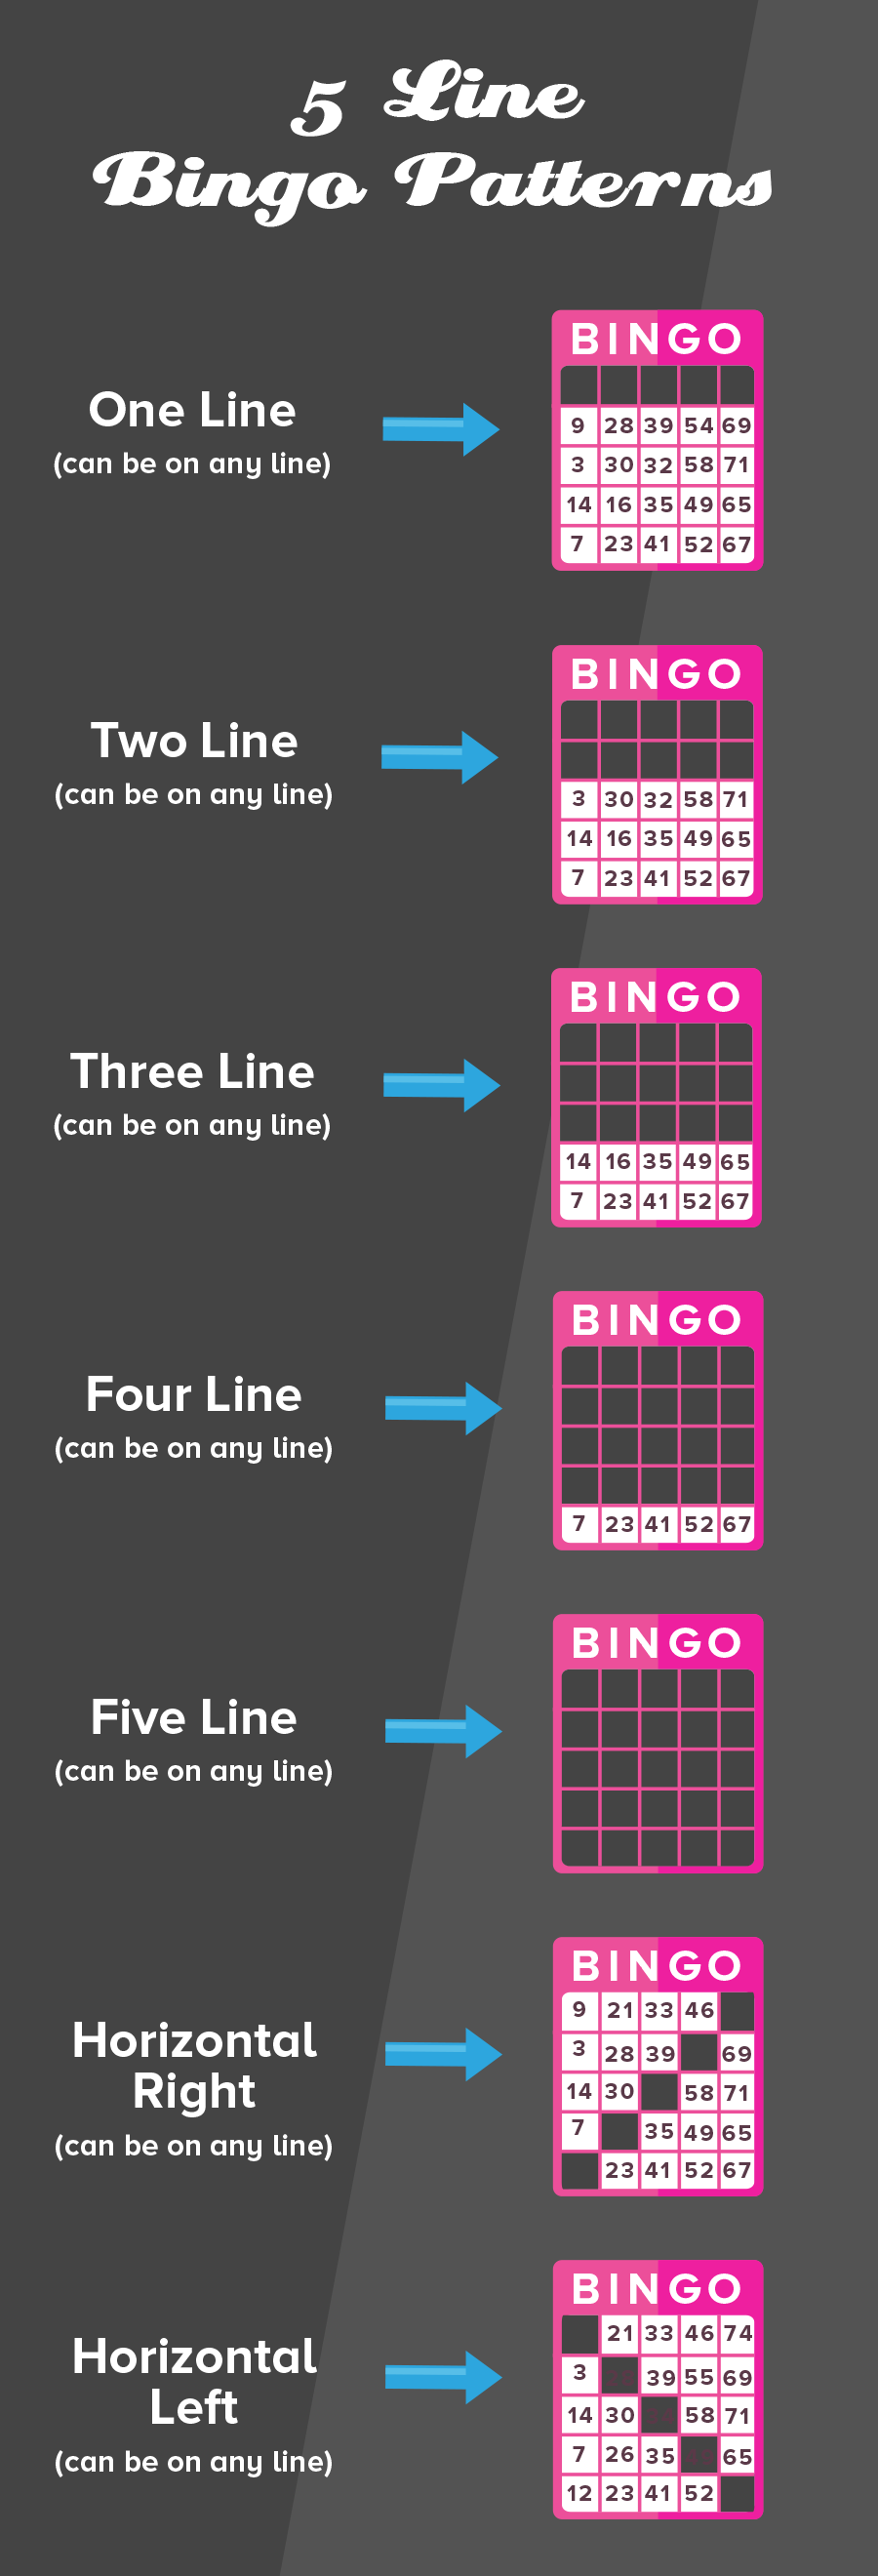 5-Line Bingo Patterns